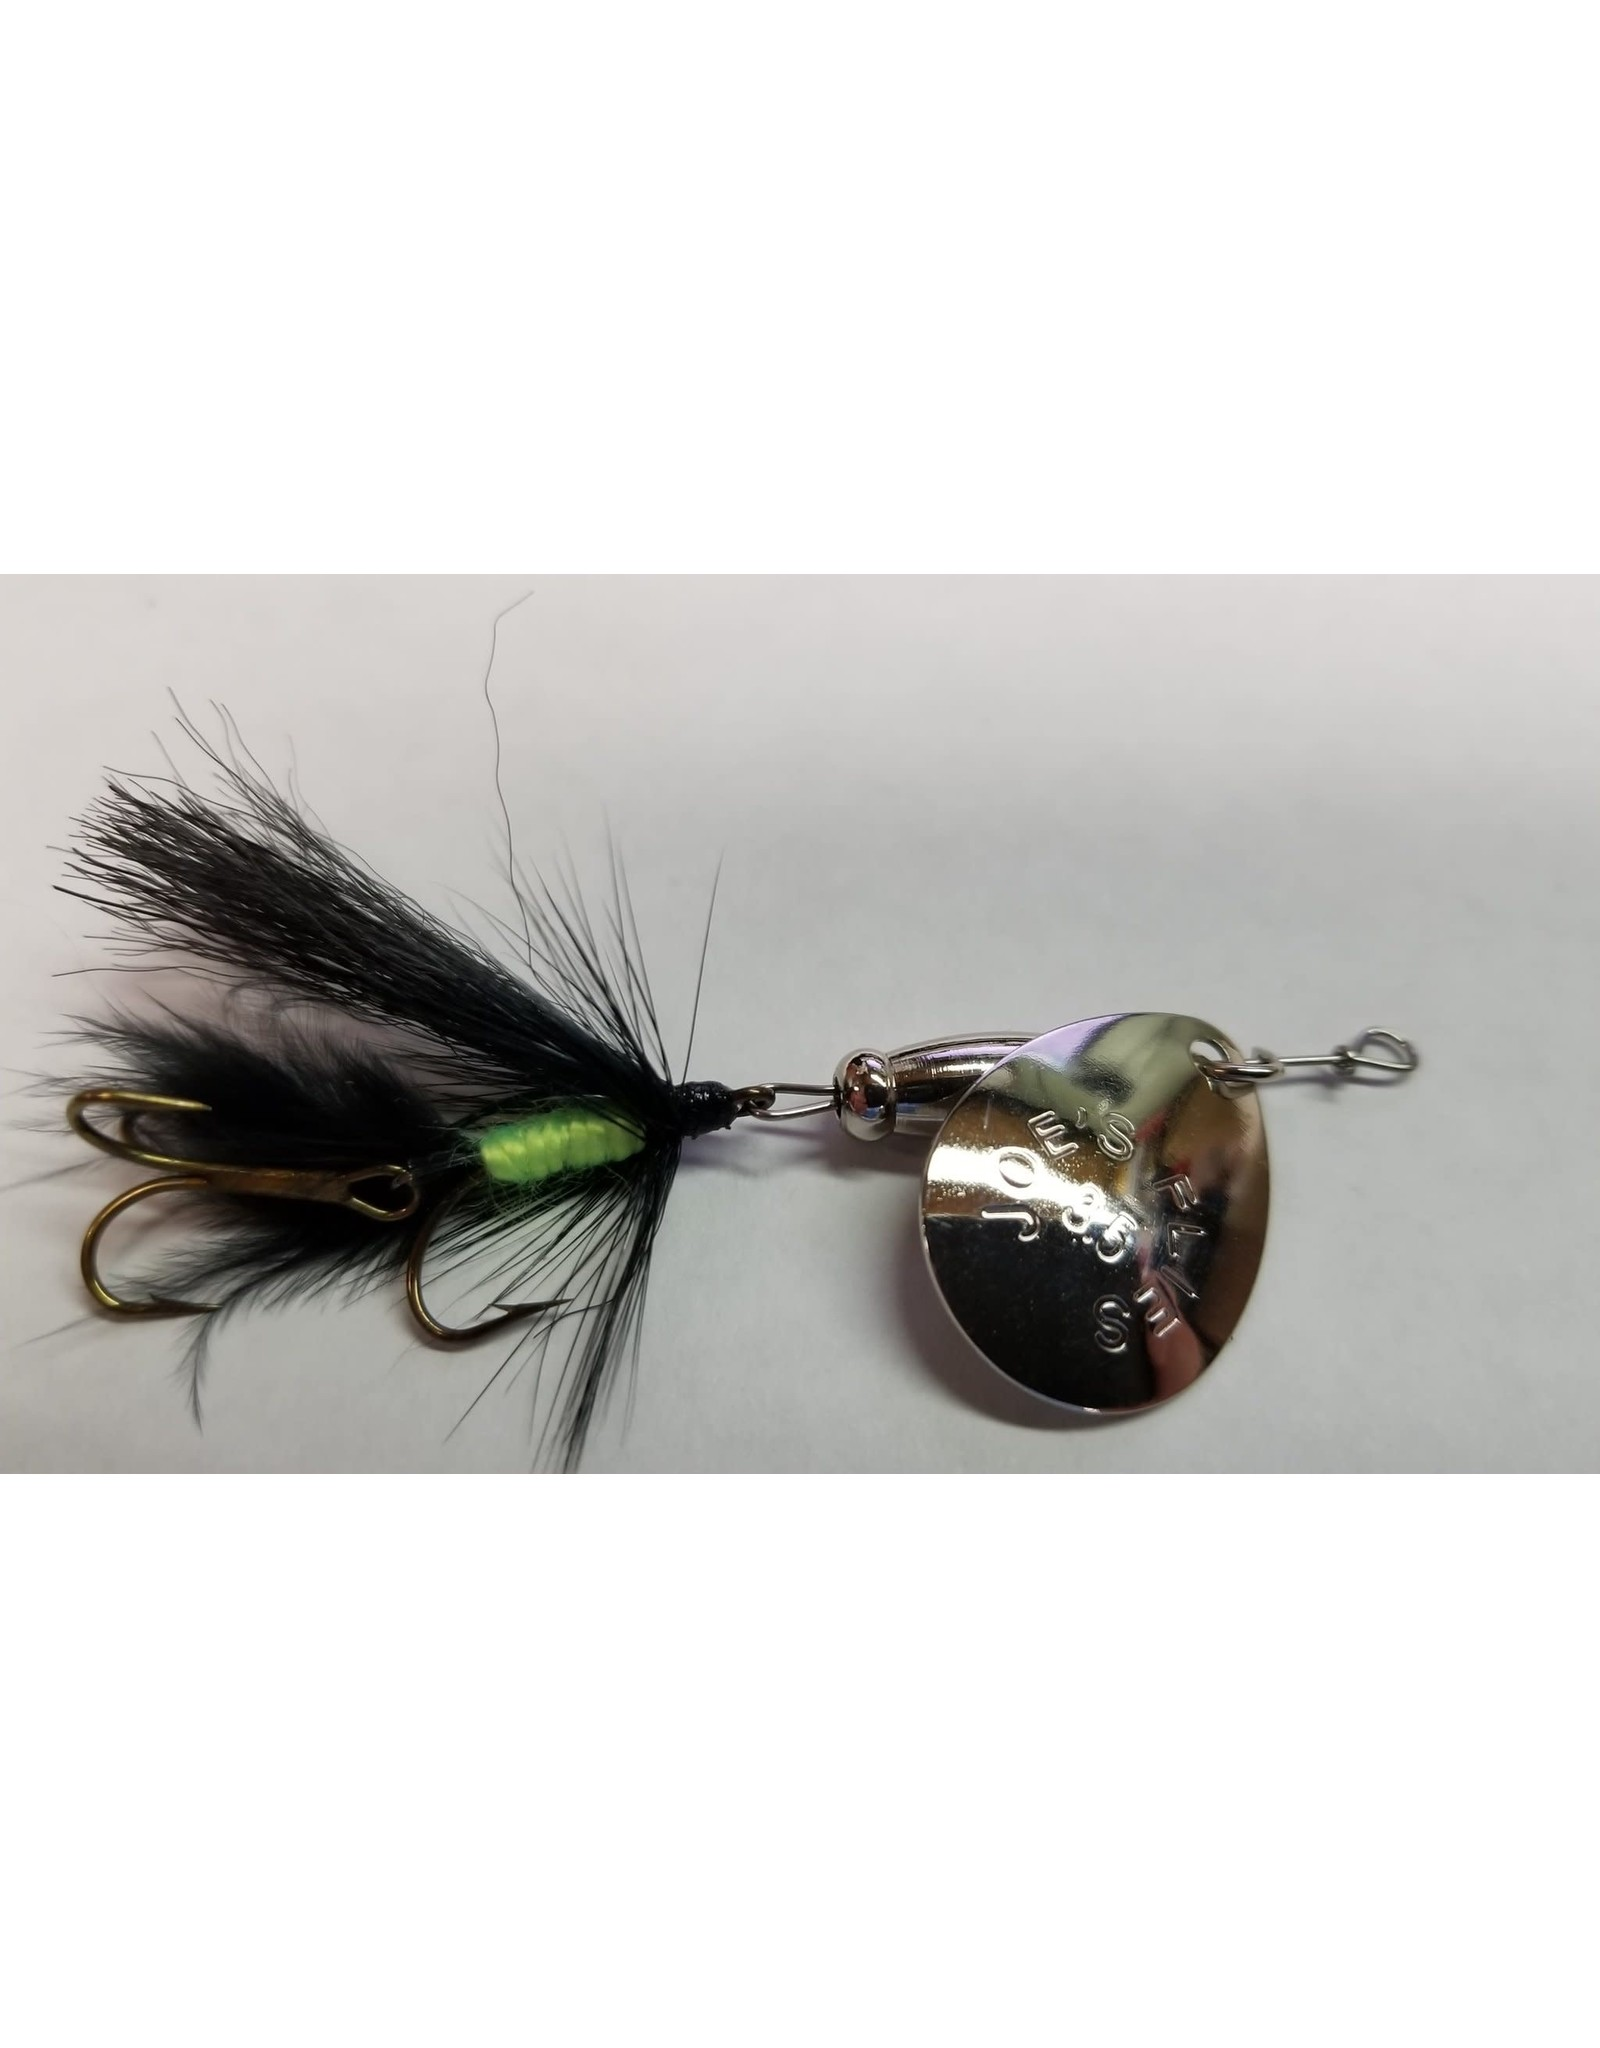 Joe's Flies Joe's Flies Super Striker - 1/4 oz.